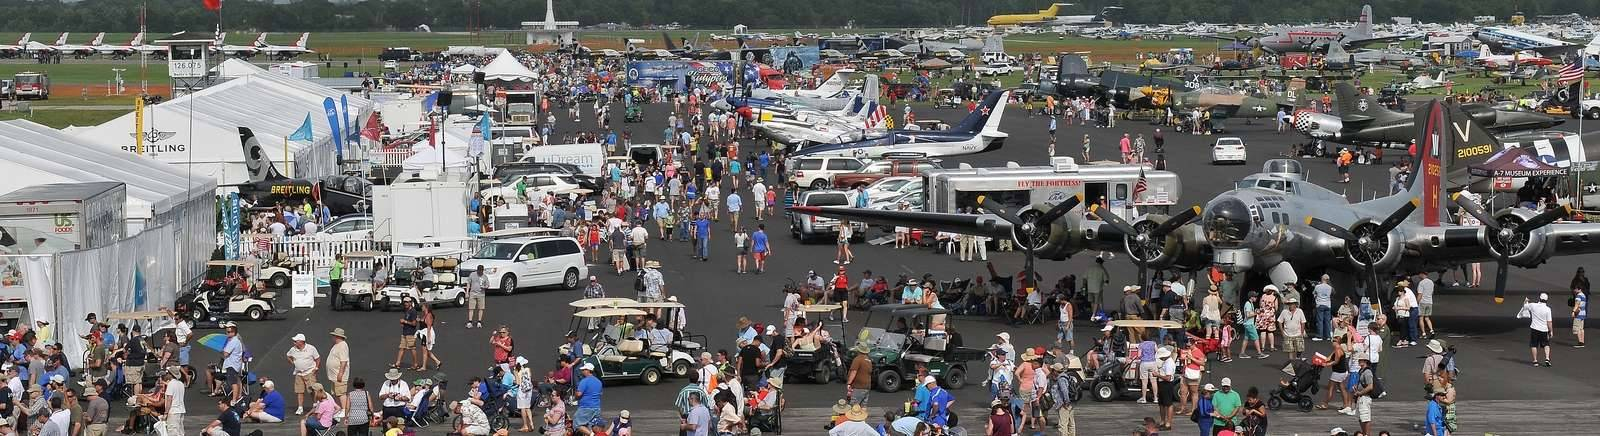 SUN 'n FUN Int'l Fly-In Expo